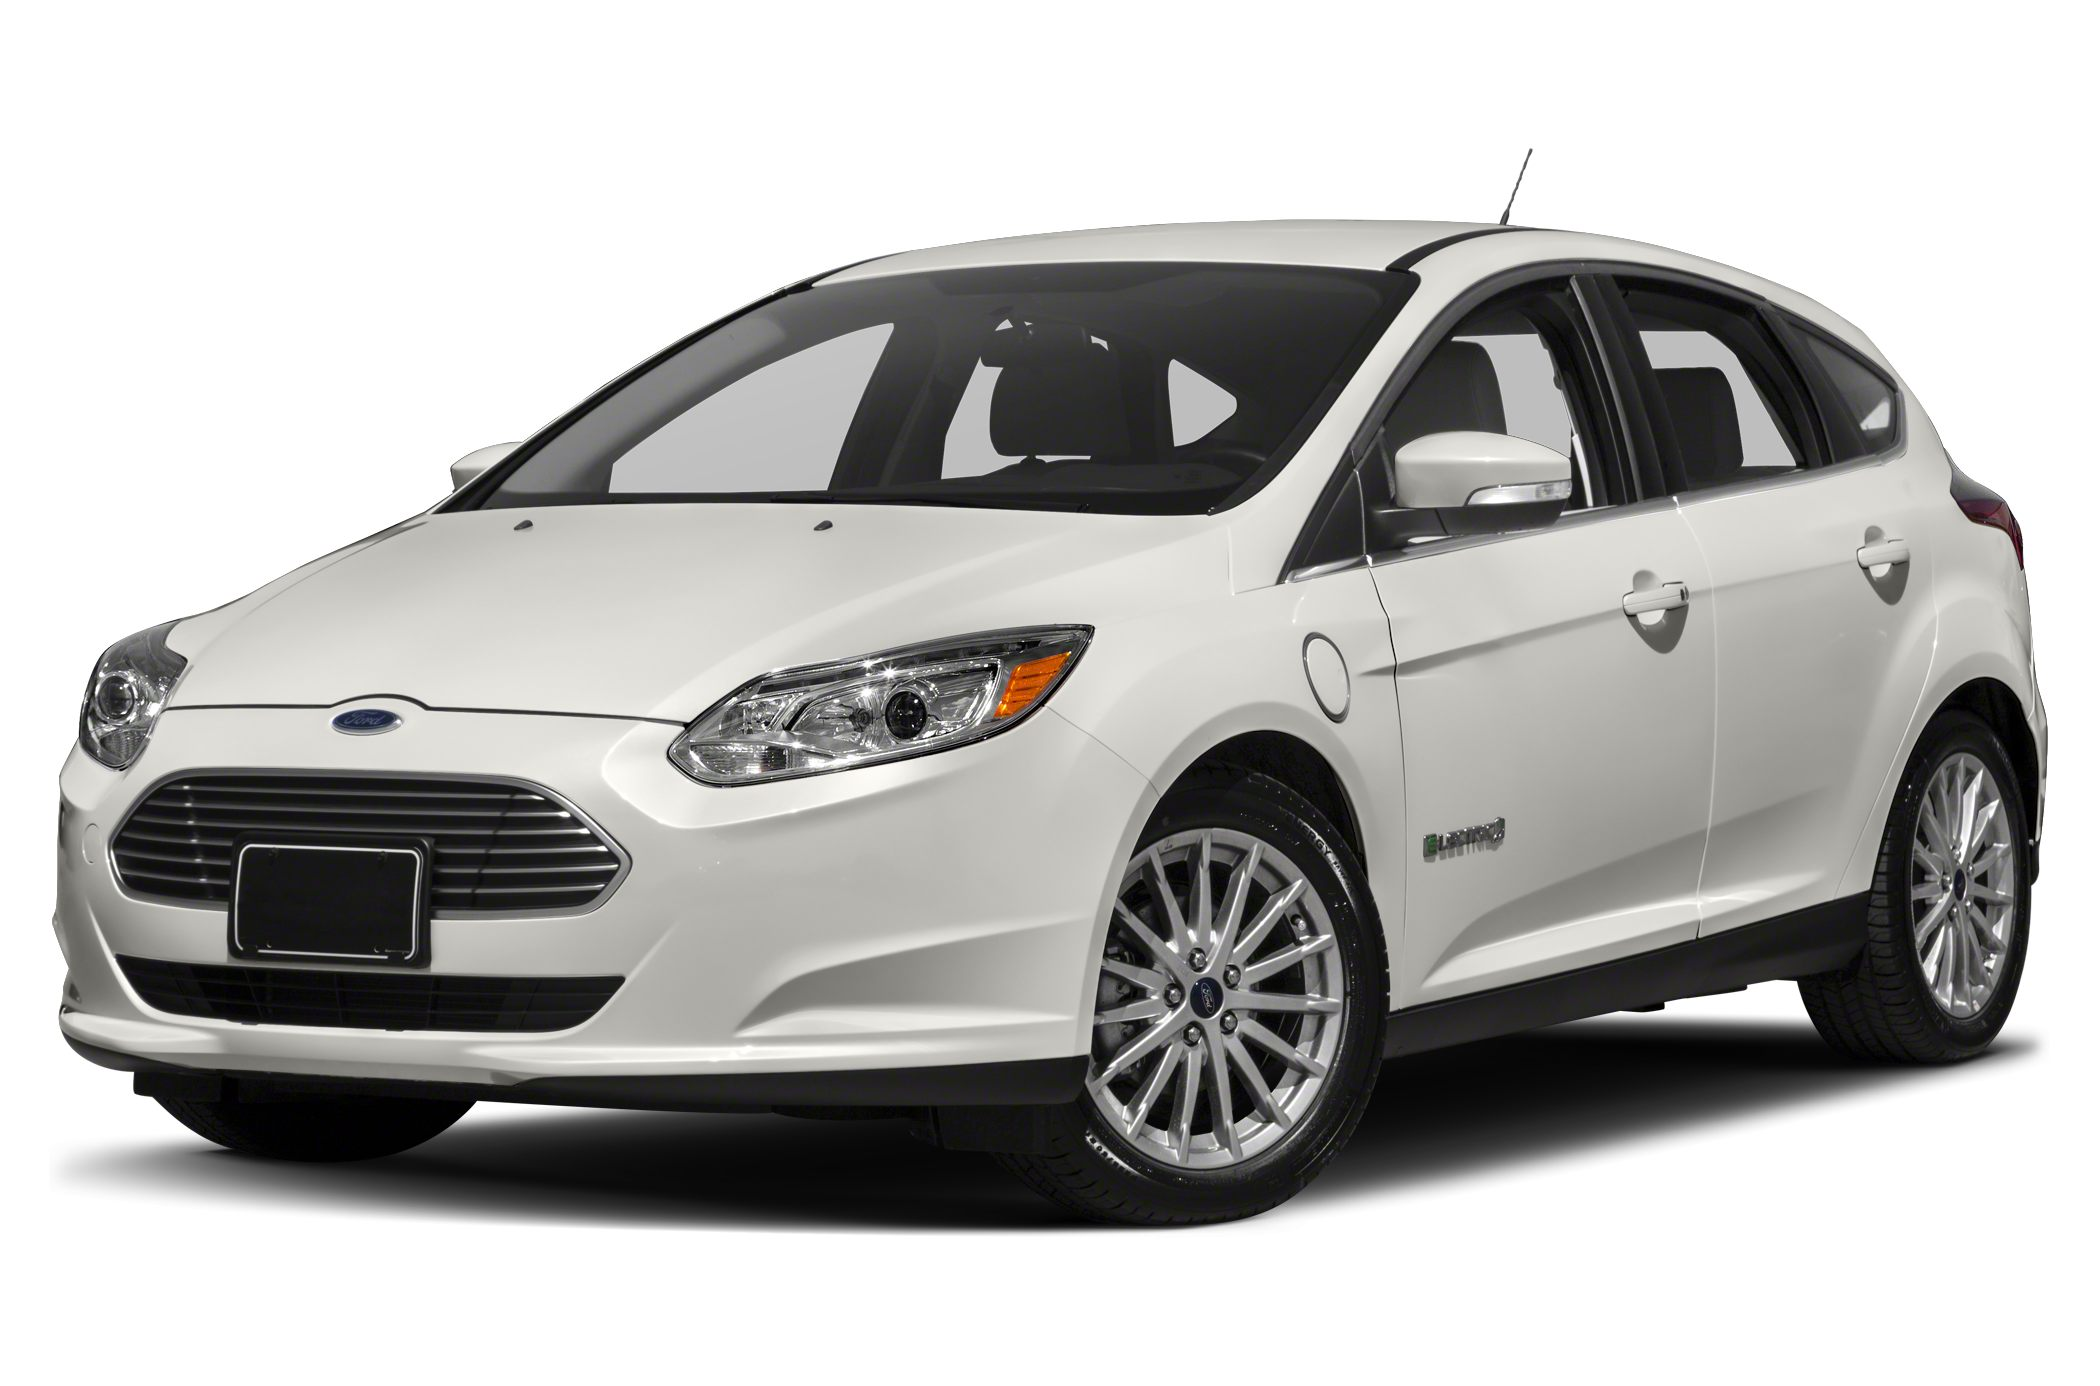 2015 Ford Focus Electric Base Hatchback for sale in Oklahoma City for $26,495 with 2 miles